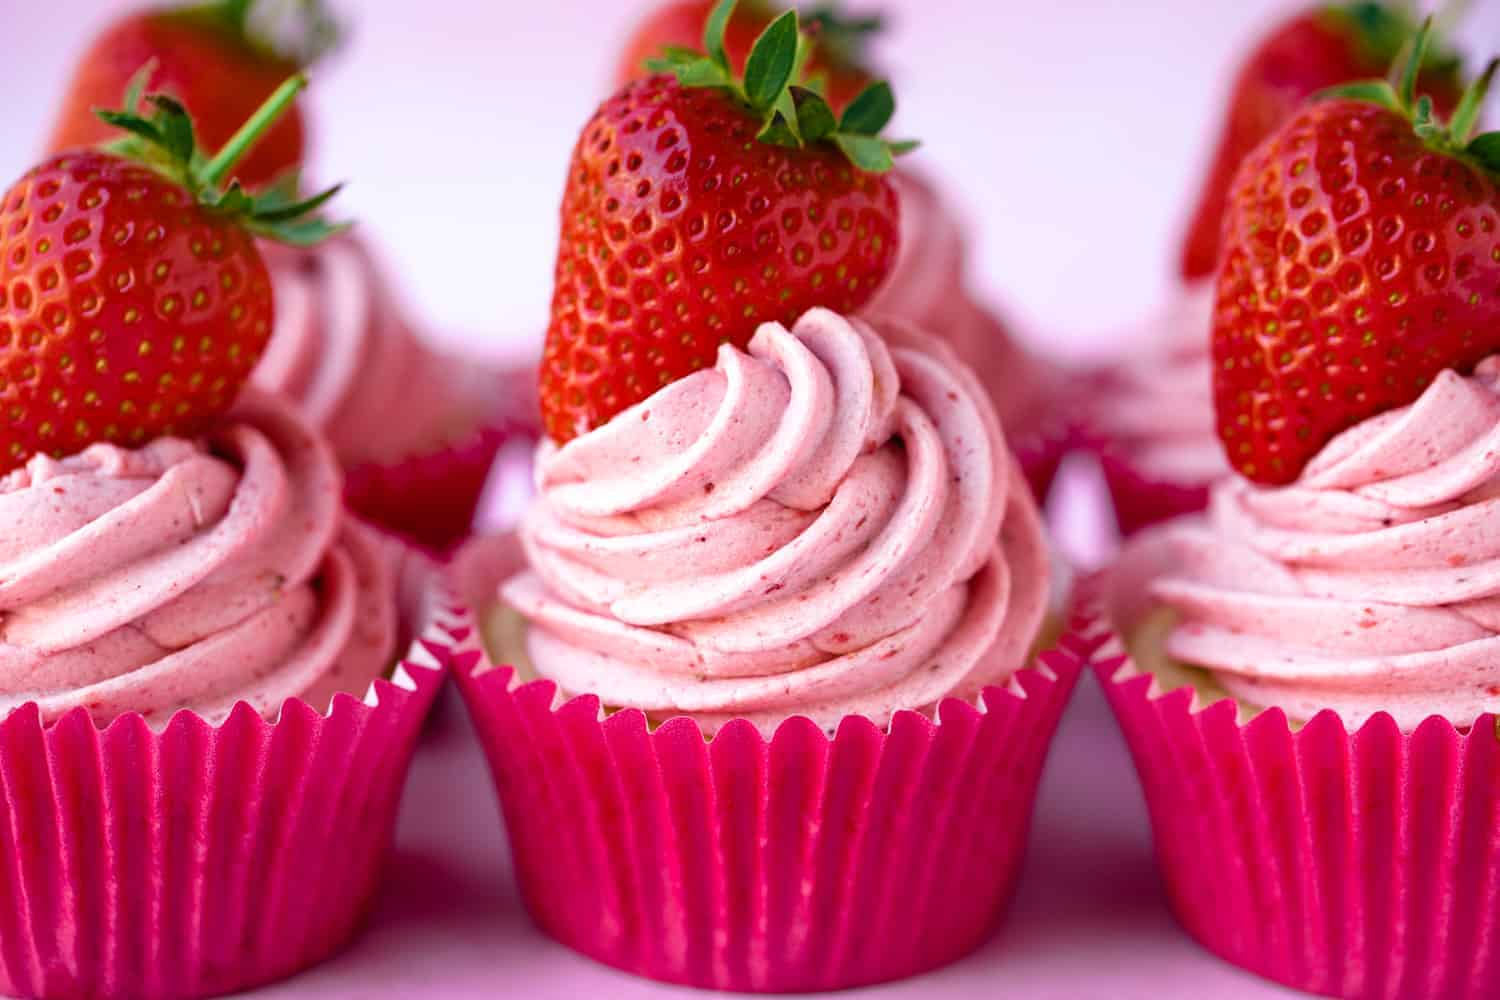 A row of pink strawberry cupcakes in pink cases topped with fresh strawberries